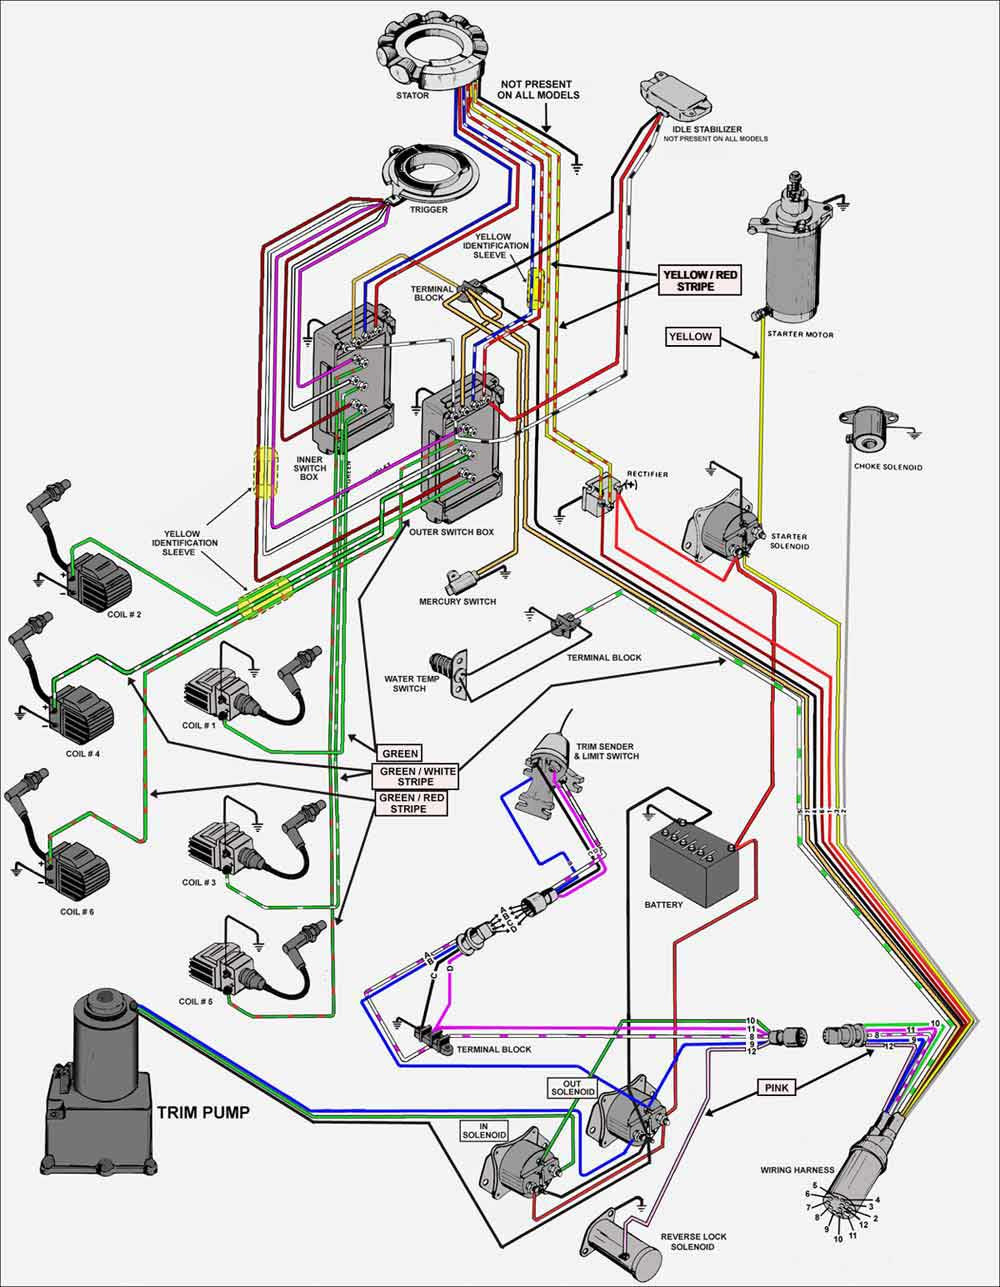 29 Mercury Outboard Wiring Diagram - Free Wiring Diagram Source | Mercury Outboard Wiring Print |  | Free Wiring Diagram Source